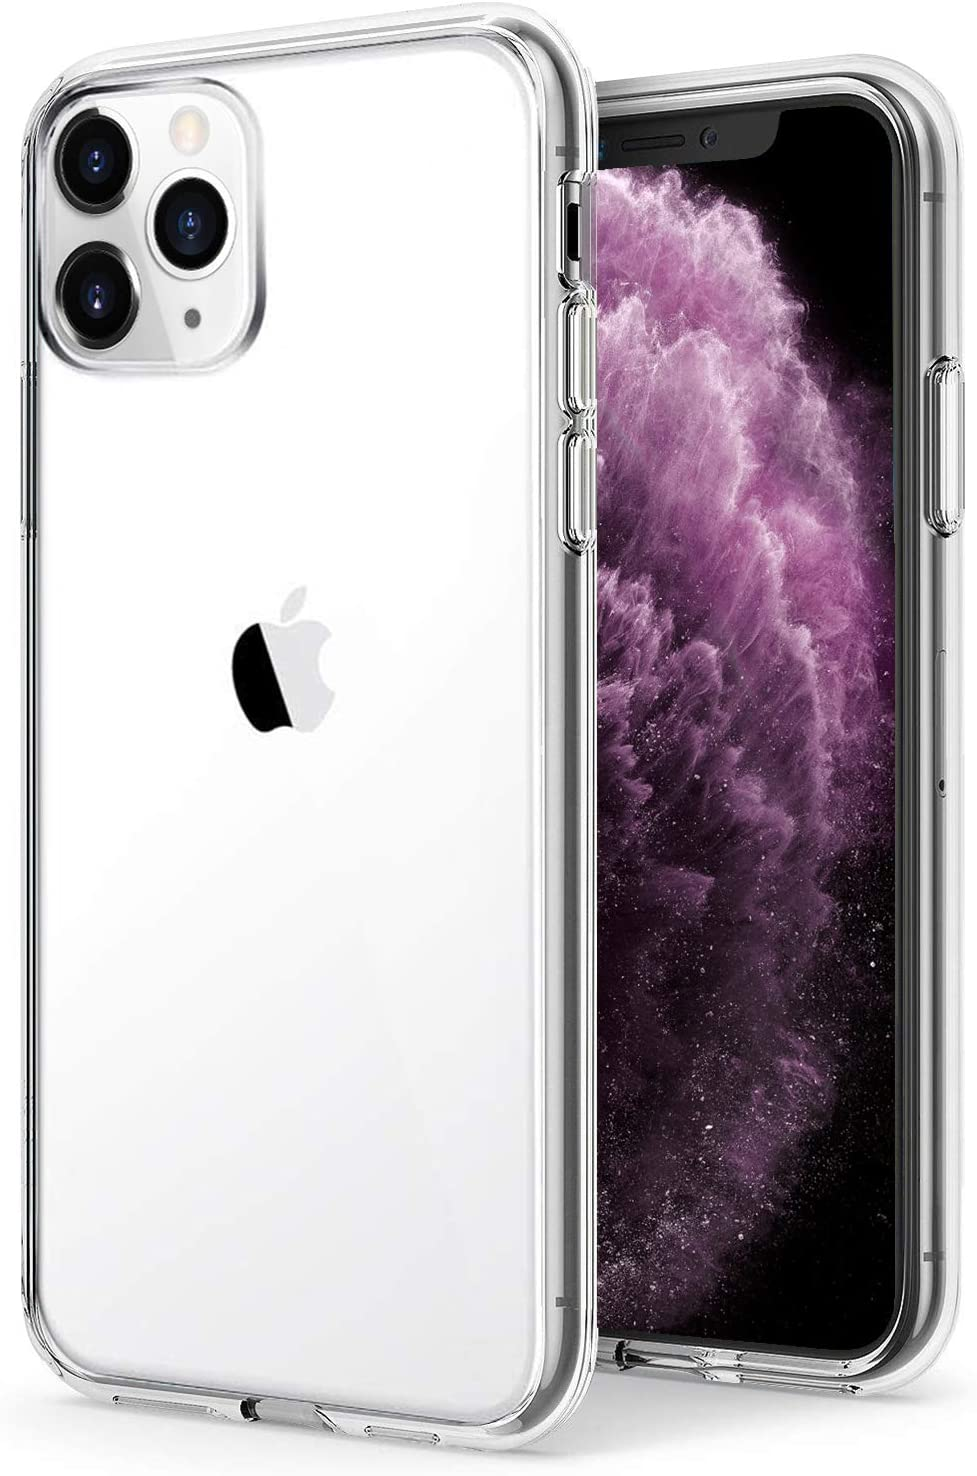 TENOC Phone Case Compatible for Apple iPhone 11 Pro 5.8 Inch, Crystal Clear Ultra Slim Cases Soft TPU Bumper Protective Cover